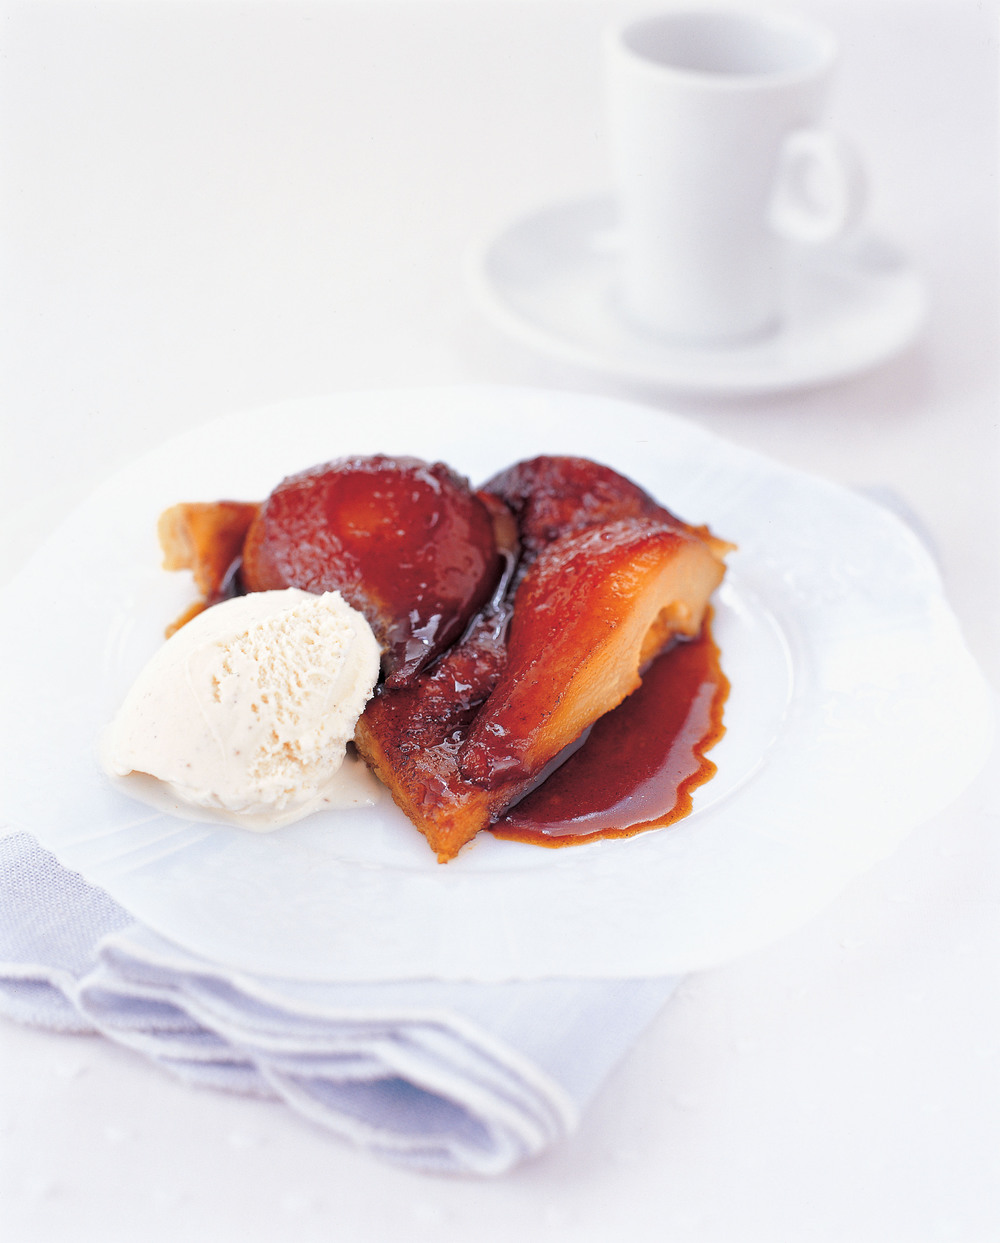 Caramel Pear & Marzipan Tart - Aol UK | Food